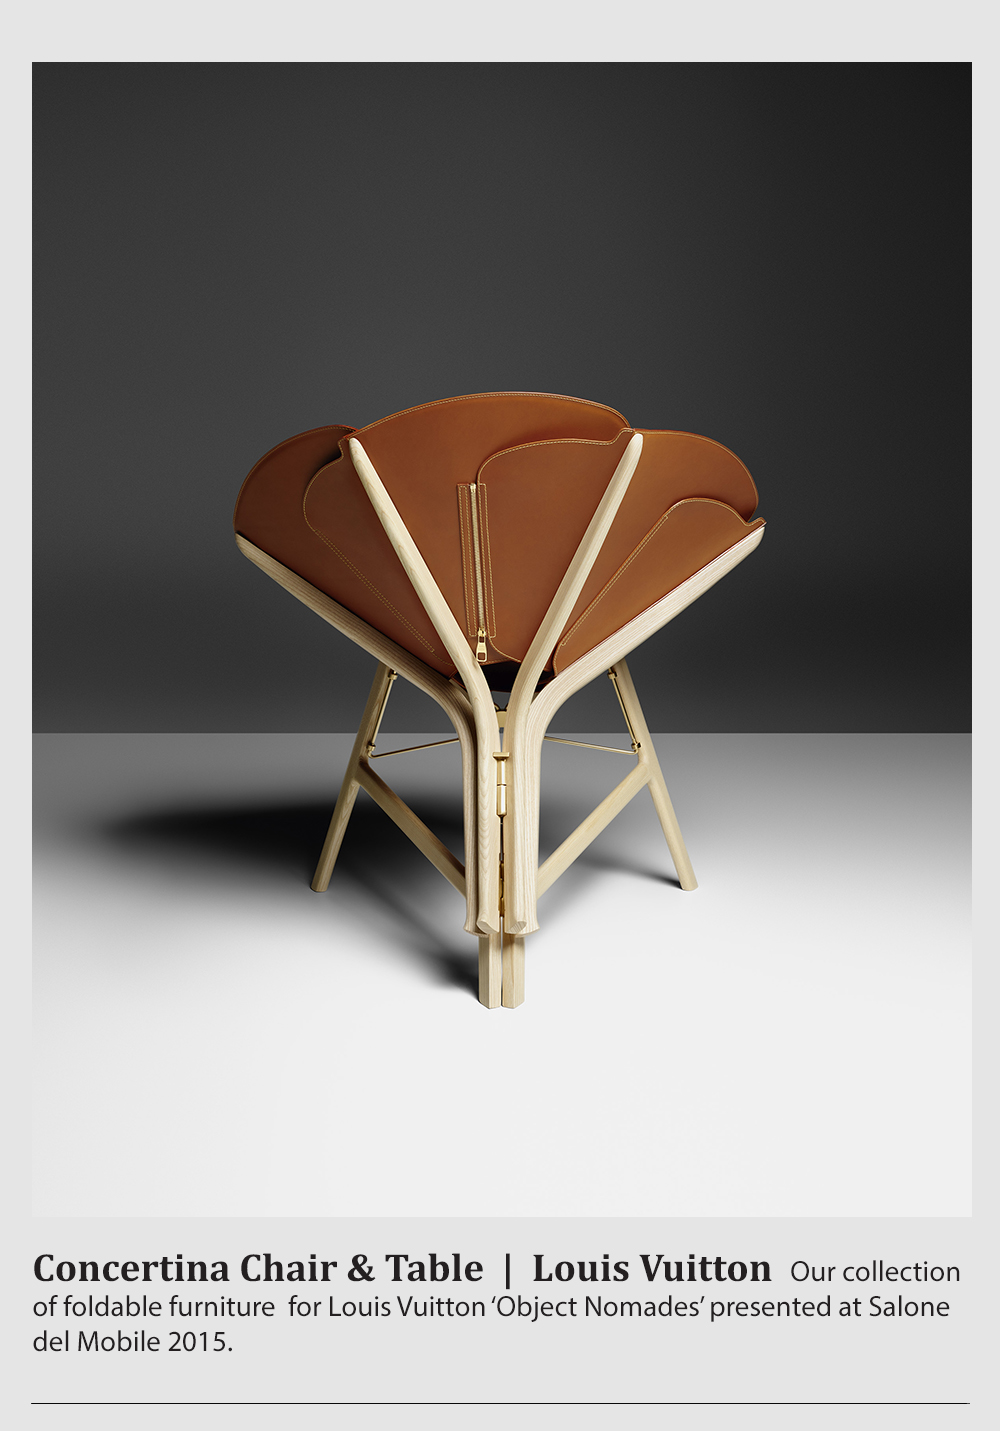 Concertina Chair And Table